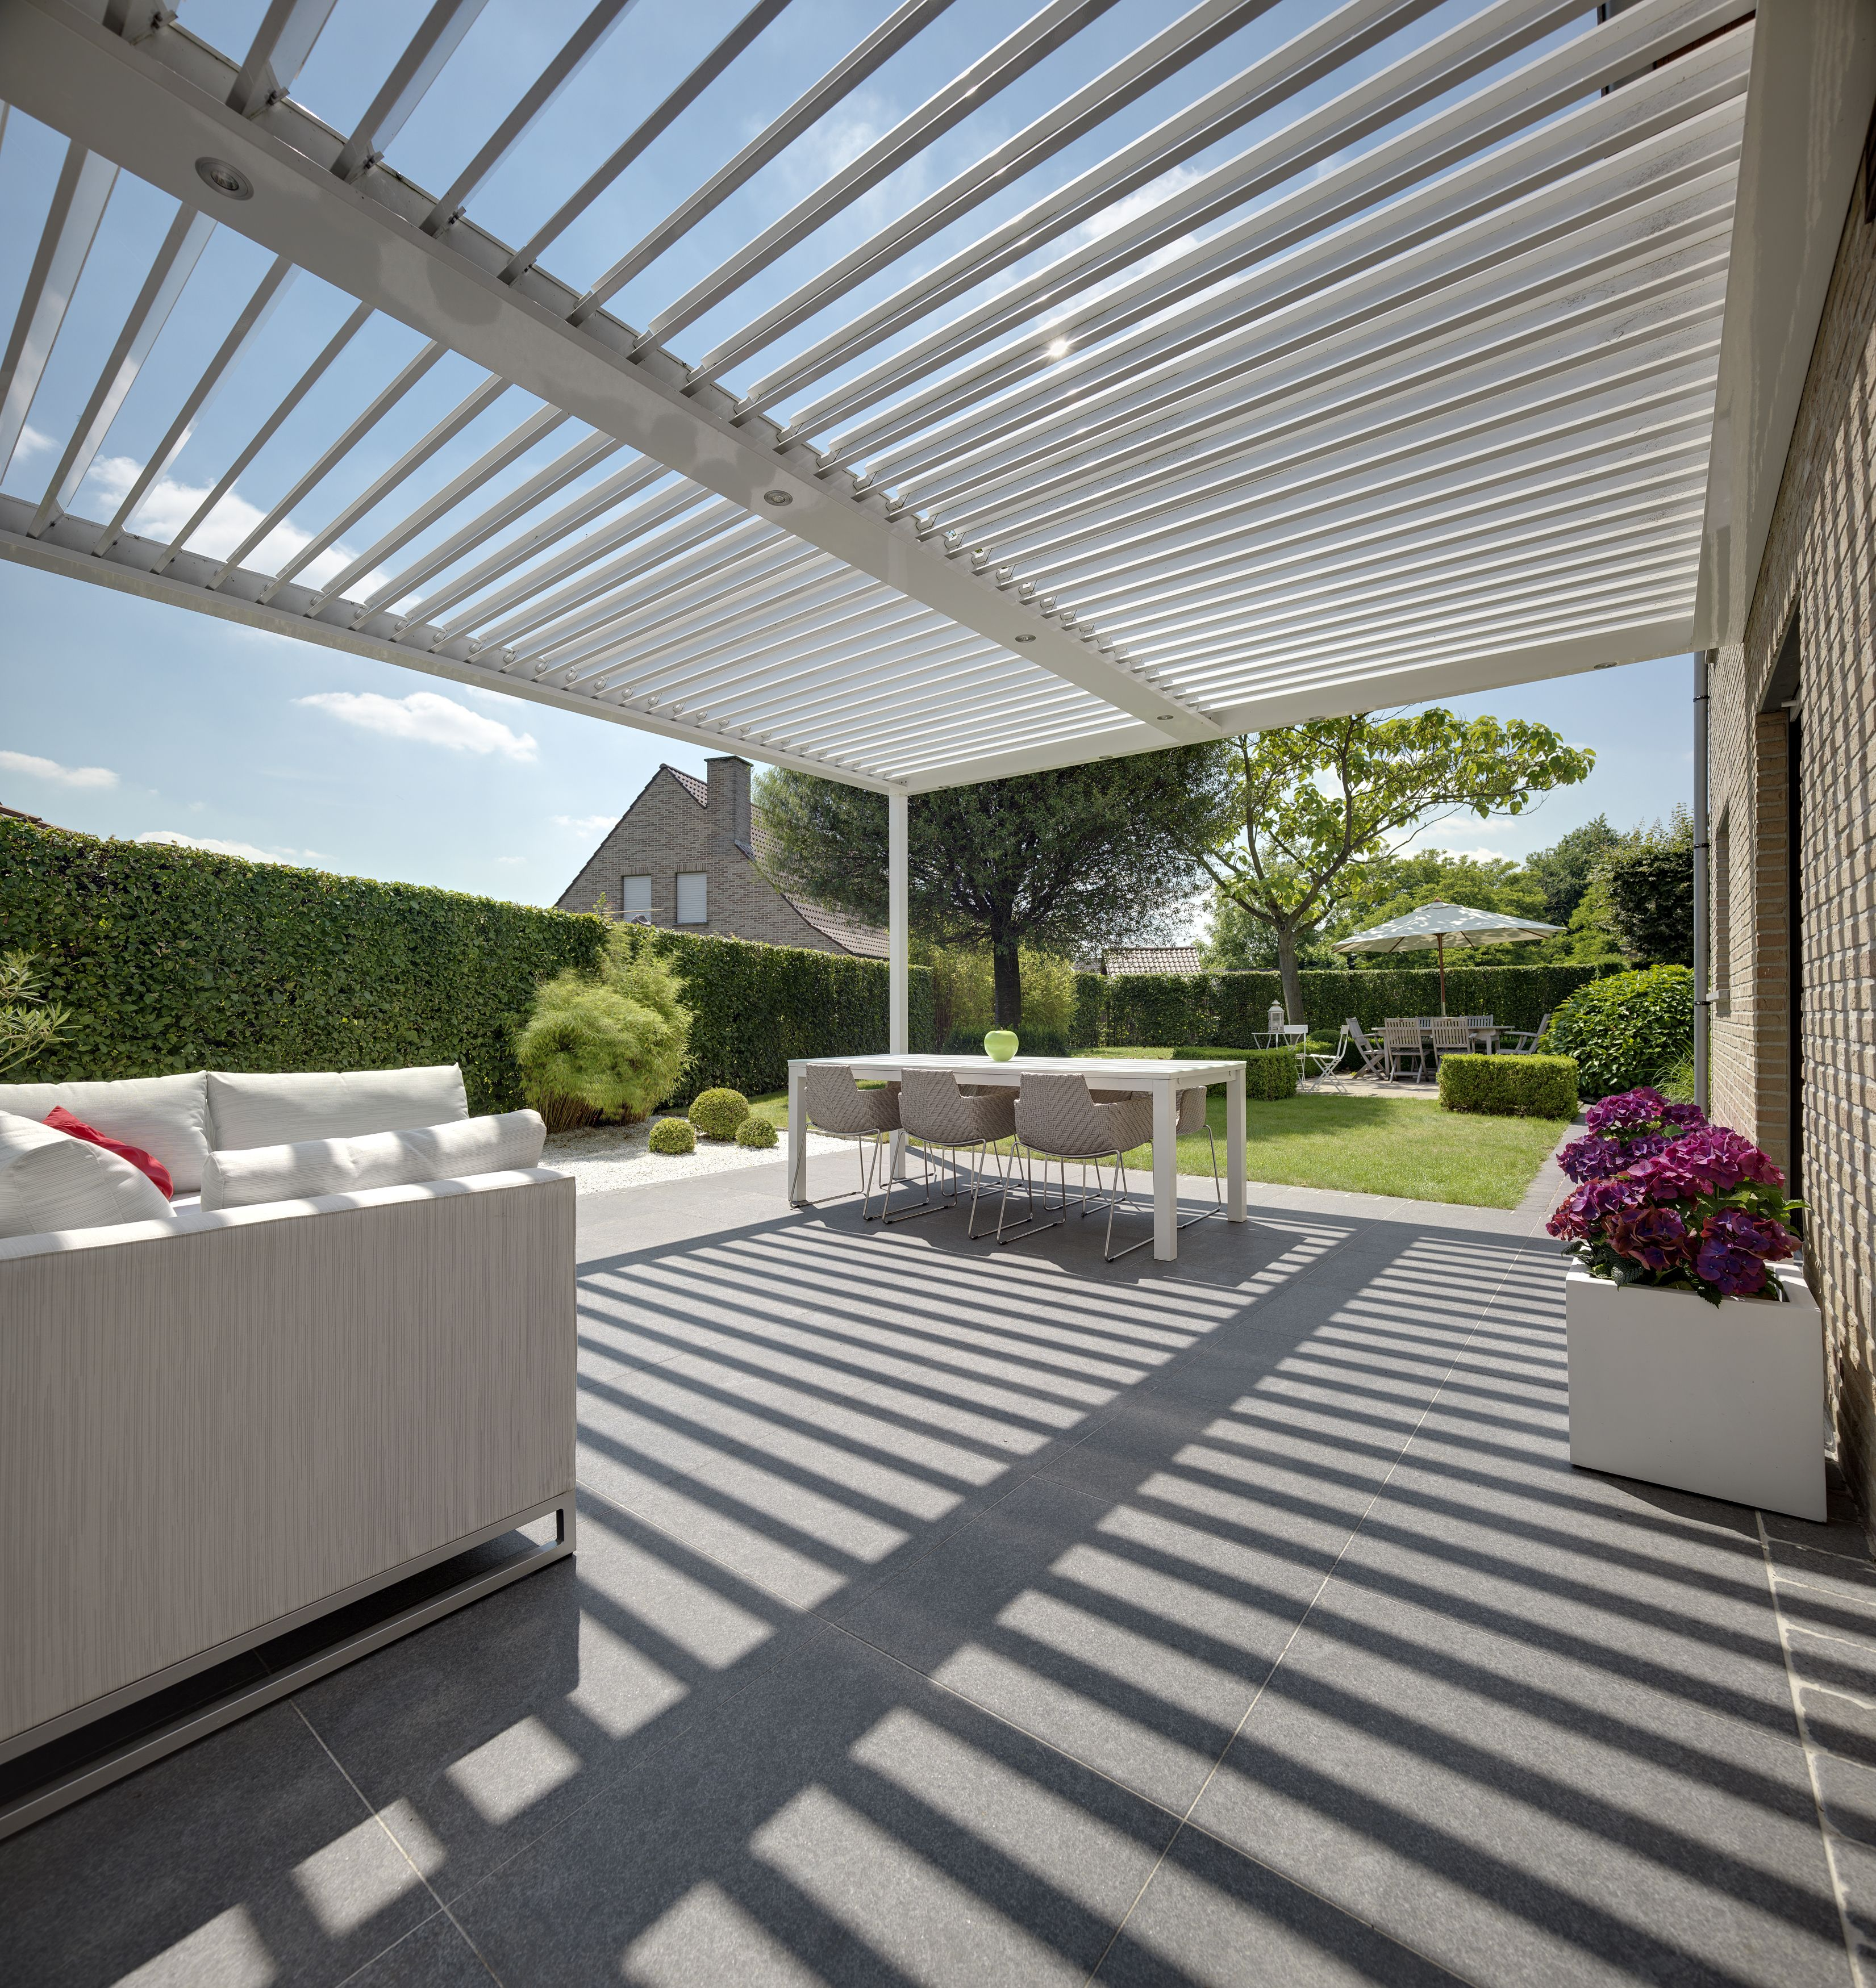 opulent design retractable roof. The Umbris patio roofing system is a bespoke  architectural design solution creating external living and